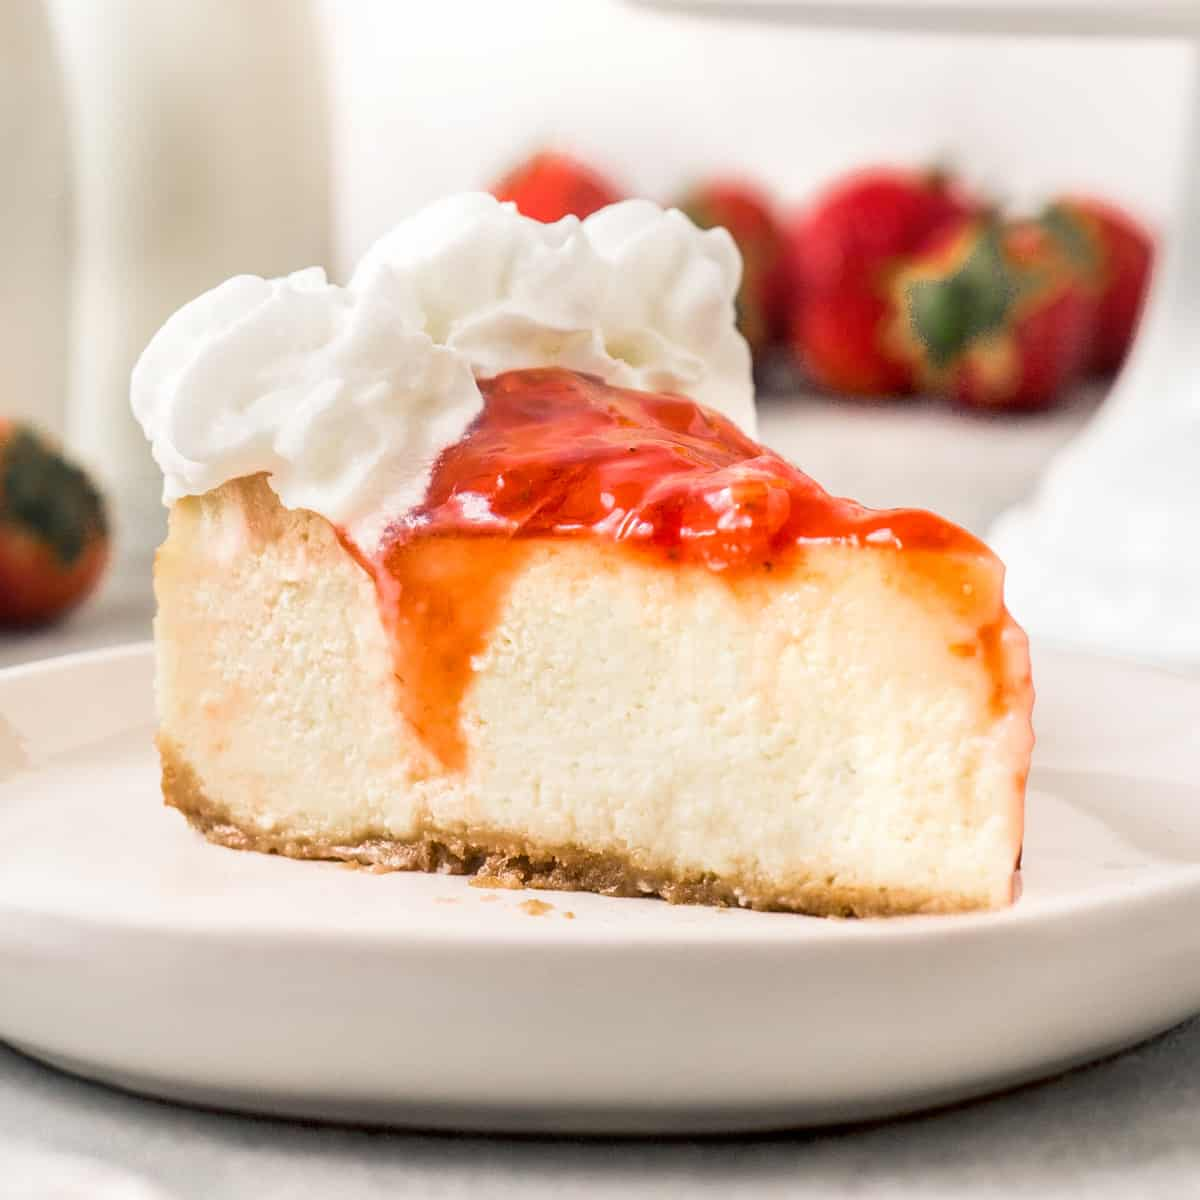 Slice of Light and Airy Strawberry Cheesecake